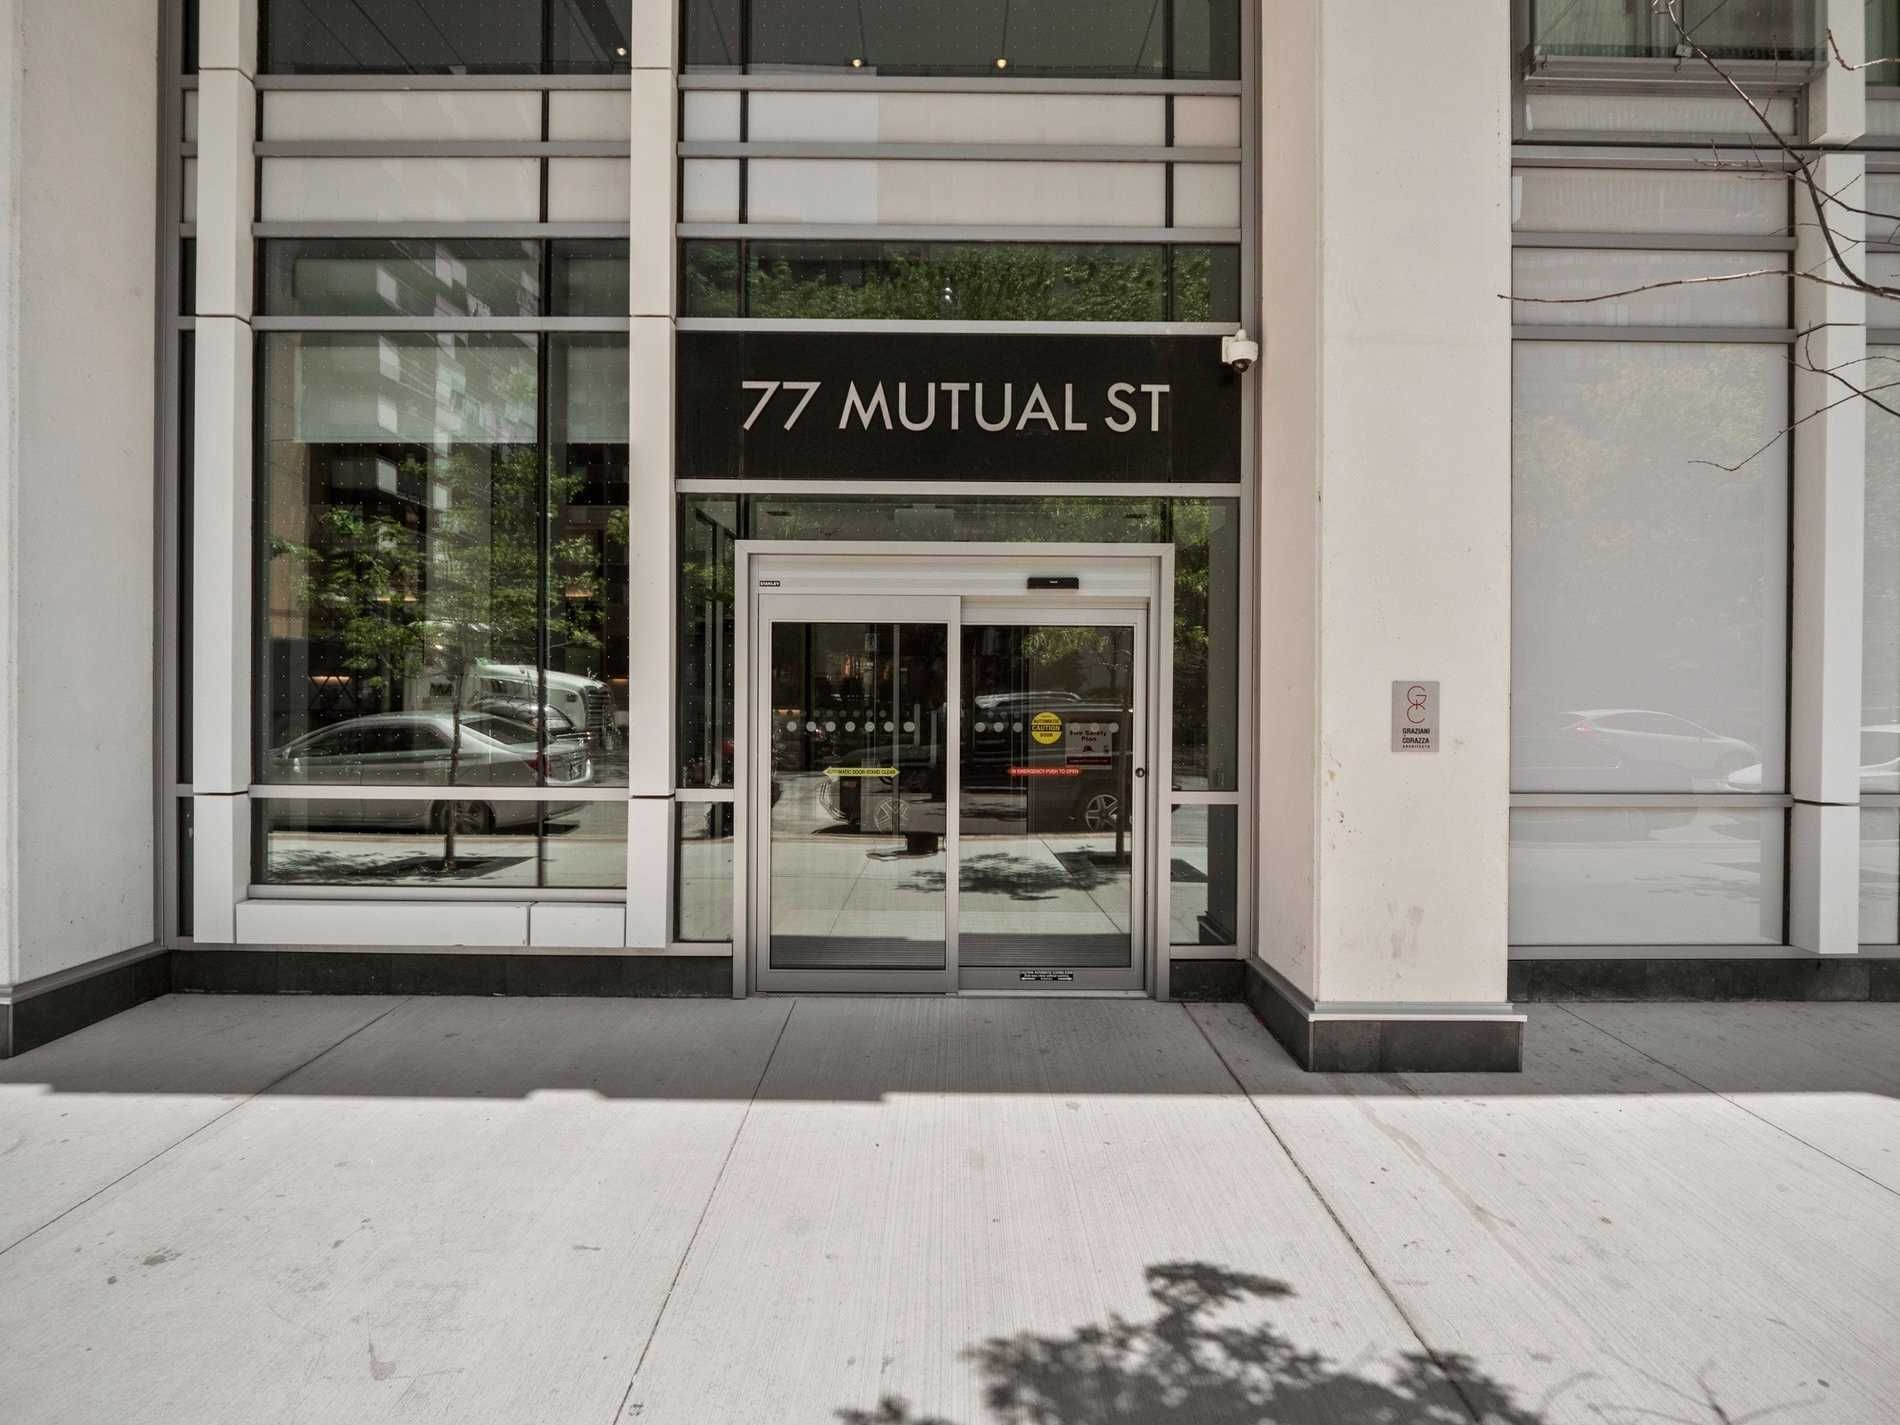 77 Mutual St, unit 413 for sale in Toronto - image #2